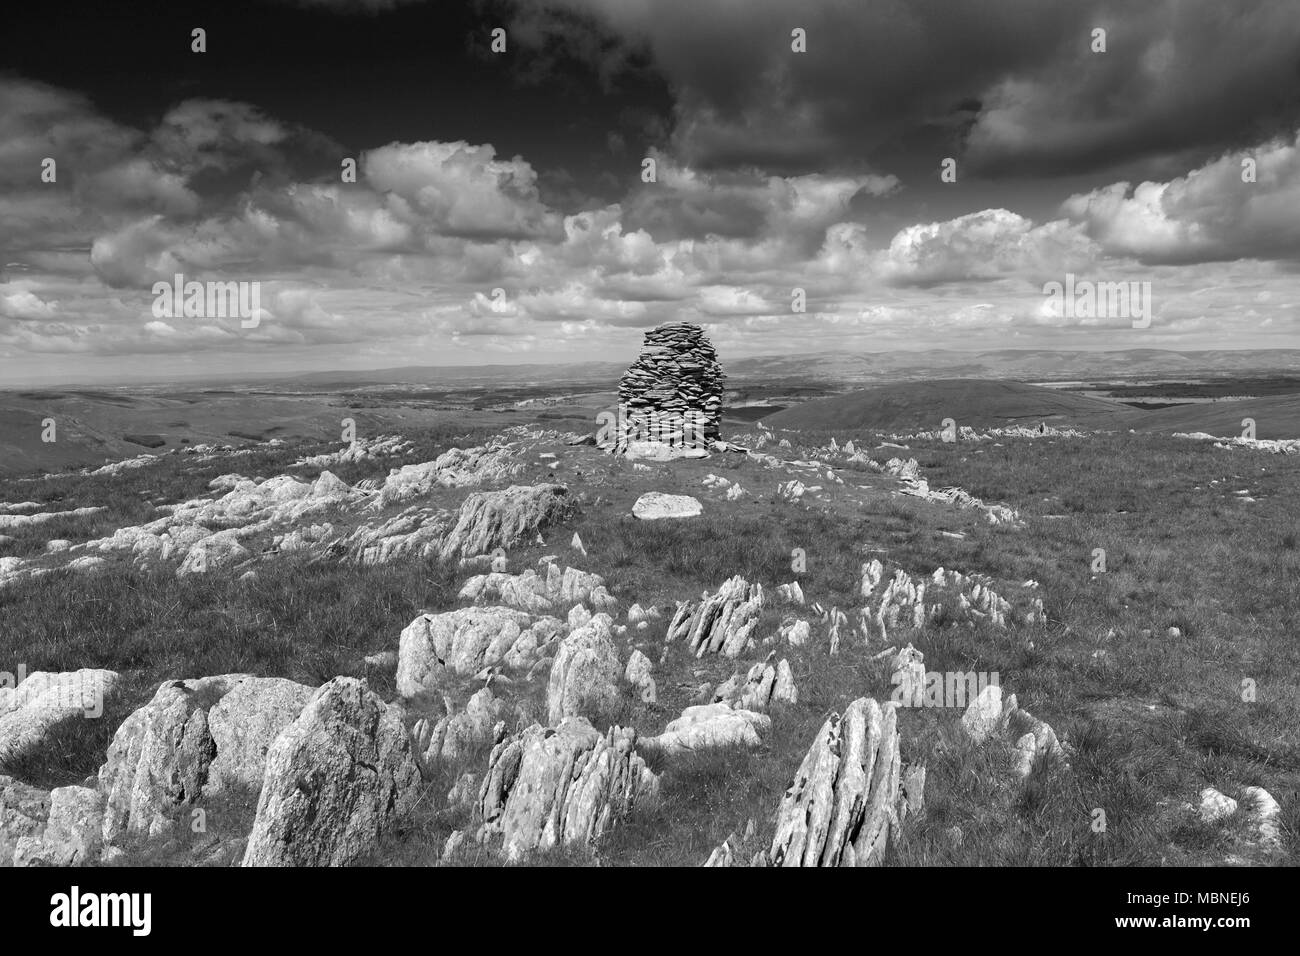 Cairns on Artle crag, Branstree Fell, Mardale Common, Lake District National Park, Cumbria County, England, UK - Stock Image